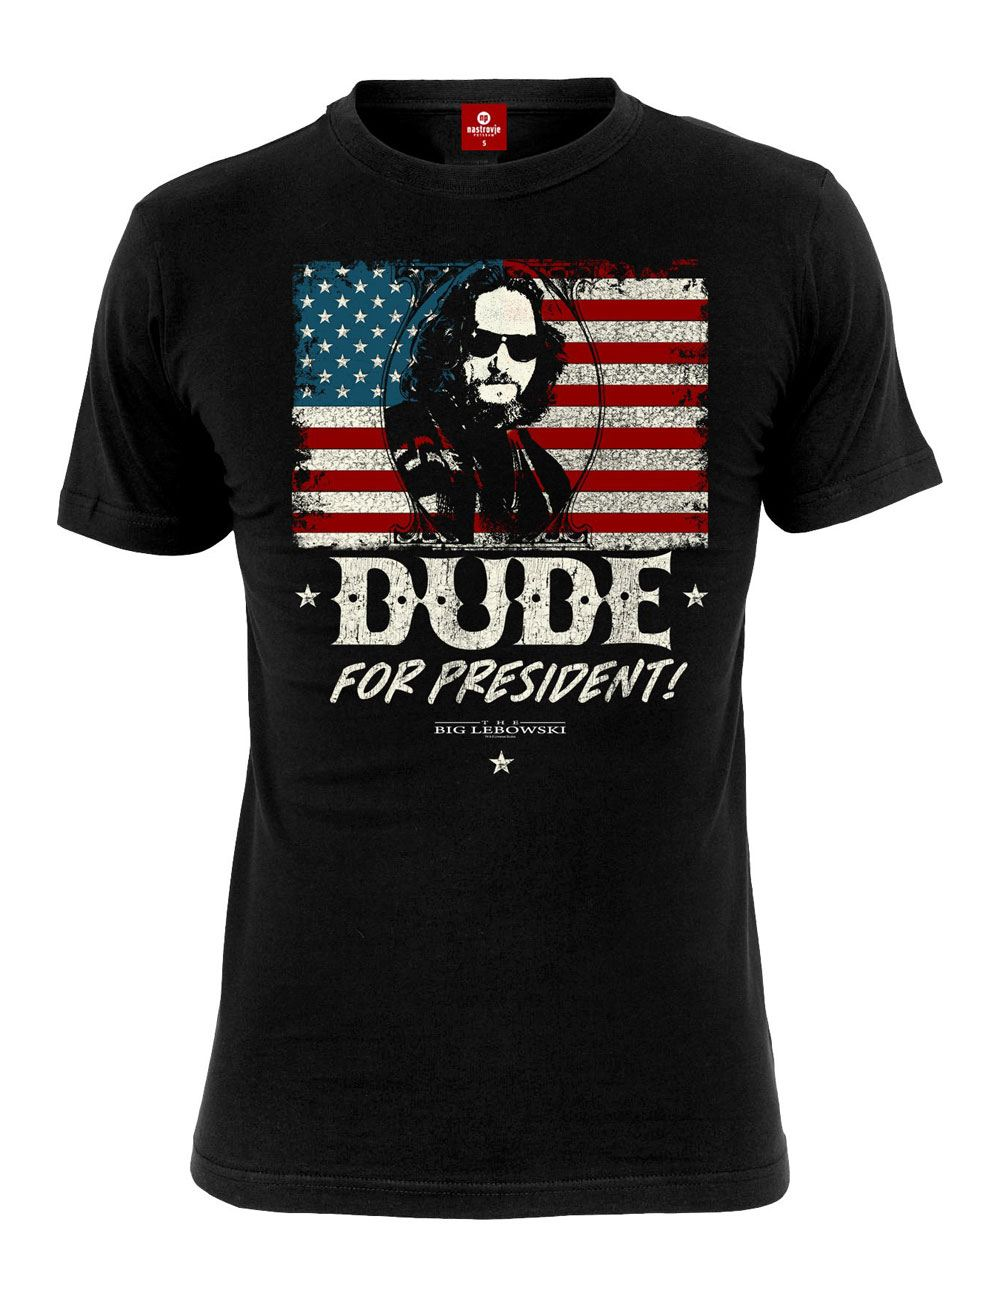 The Big Lebowski T-Shirt Dude for President Size XL